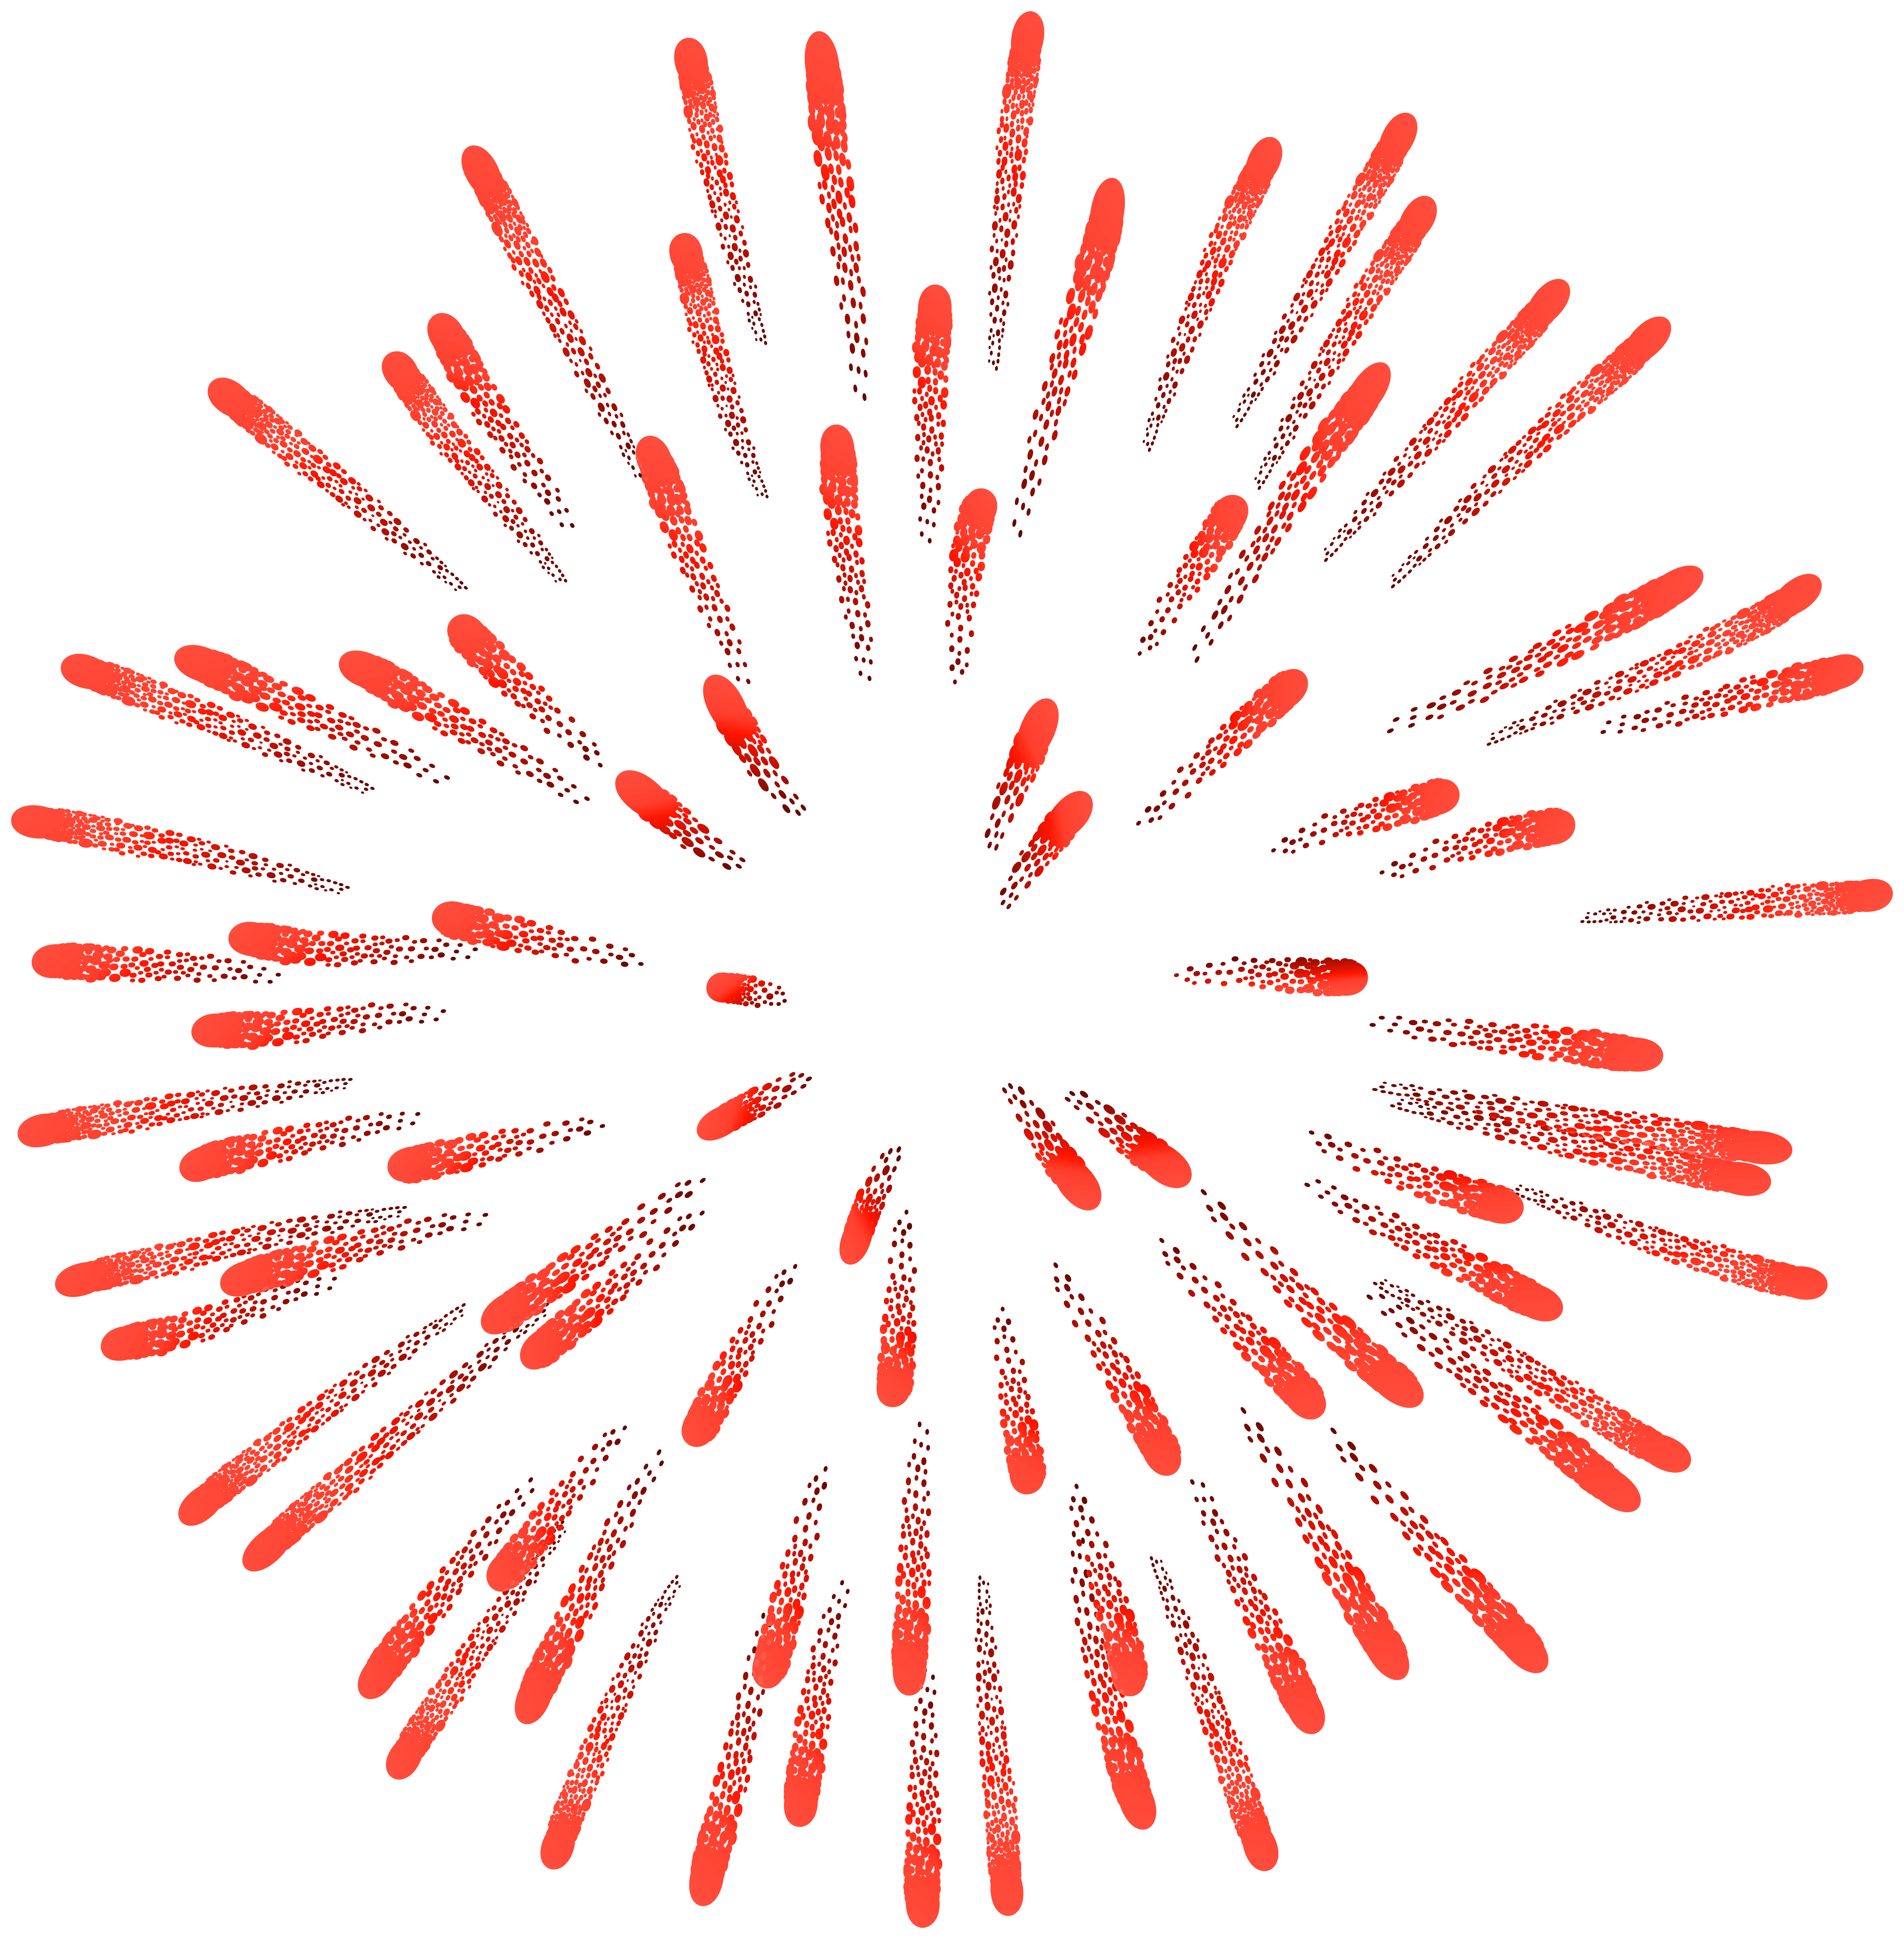 Firework red png clip. Clipart fireworks